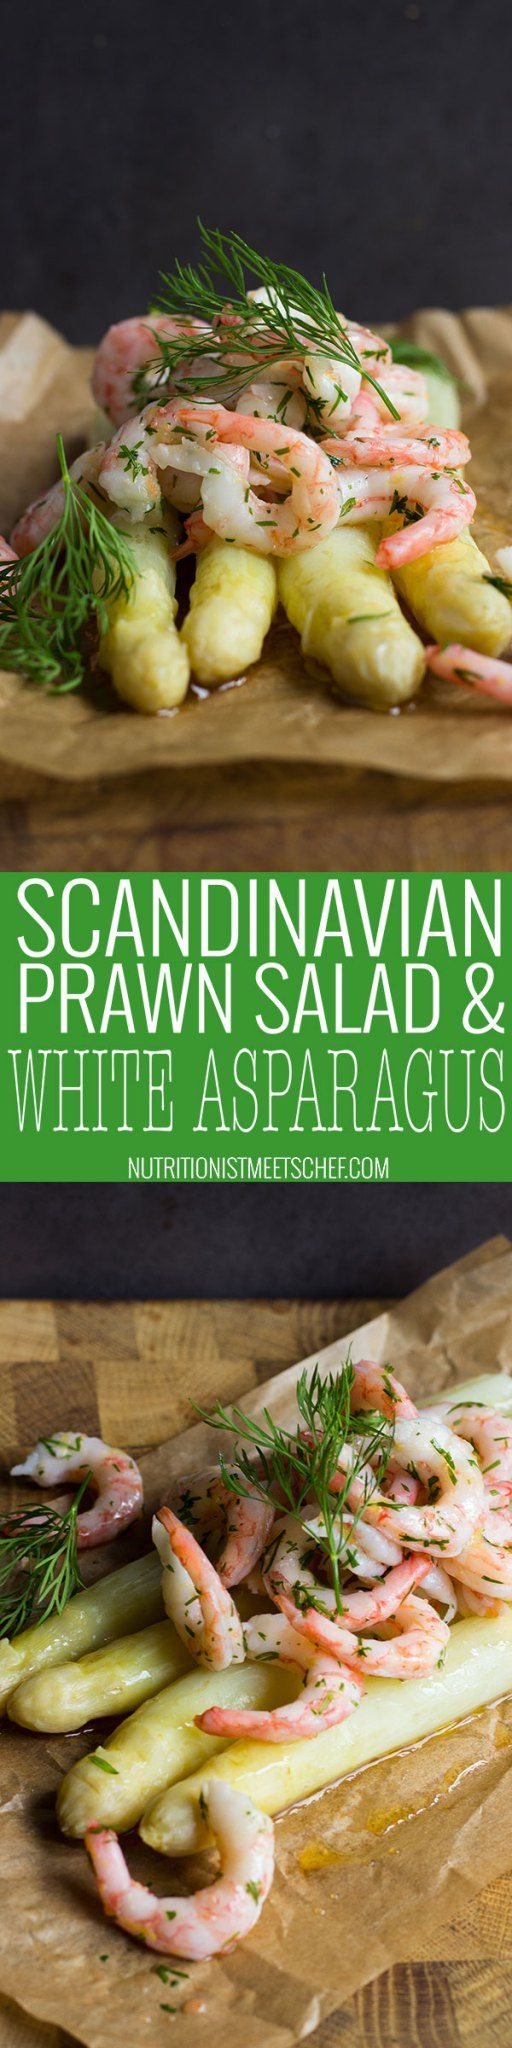 Scandinavian Prawn Salad on White Asparagus. A tasty and delicious dish that takes about 20 minutes to make! Serve as a starter or as a light brunch!